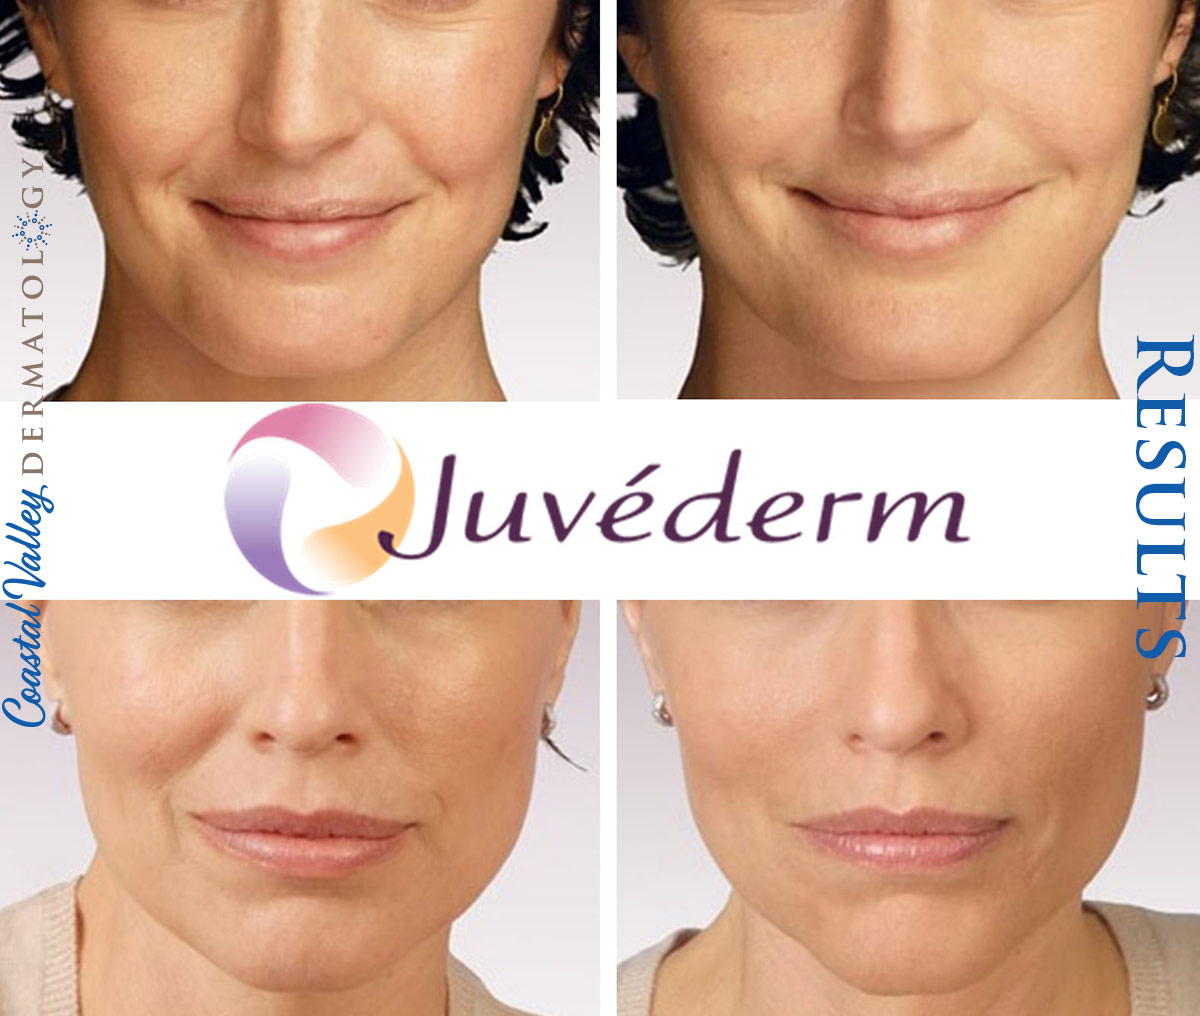 coastal-valley-dermatology-carmel-juvederm-before-after-photo